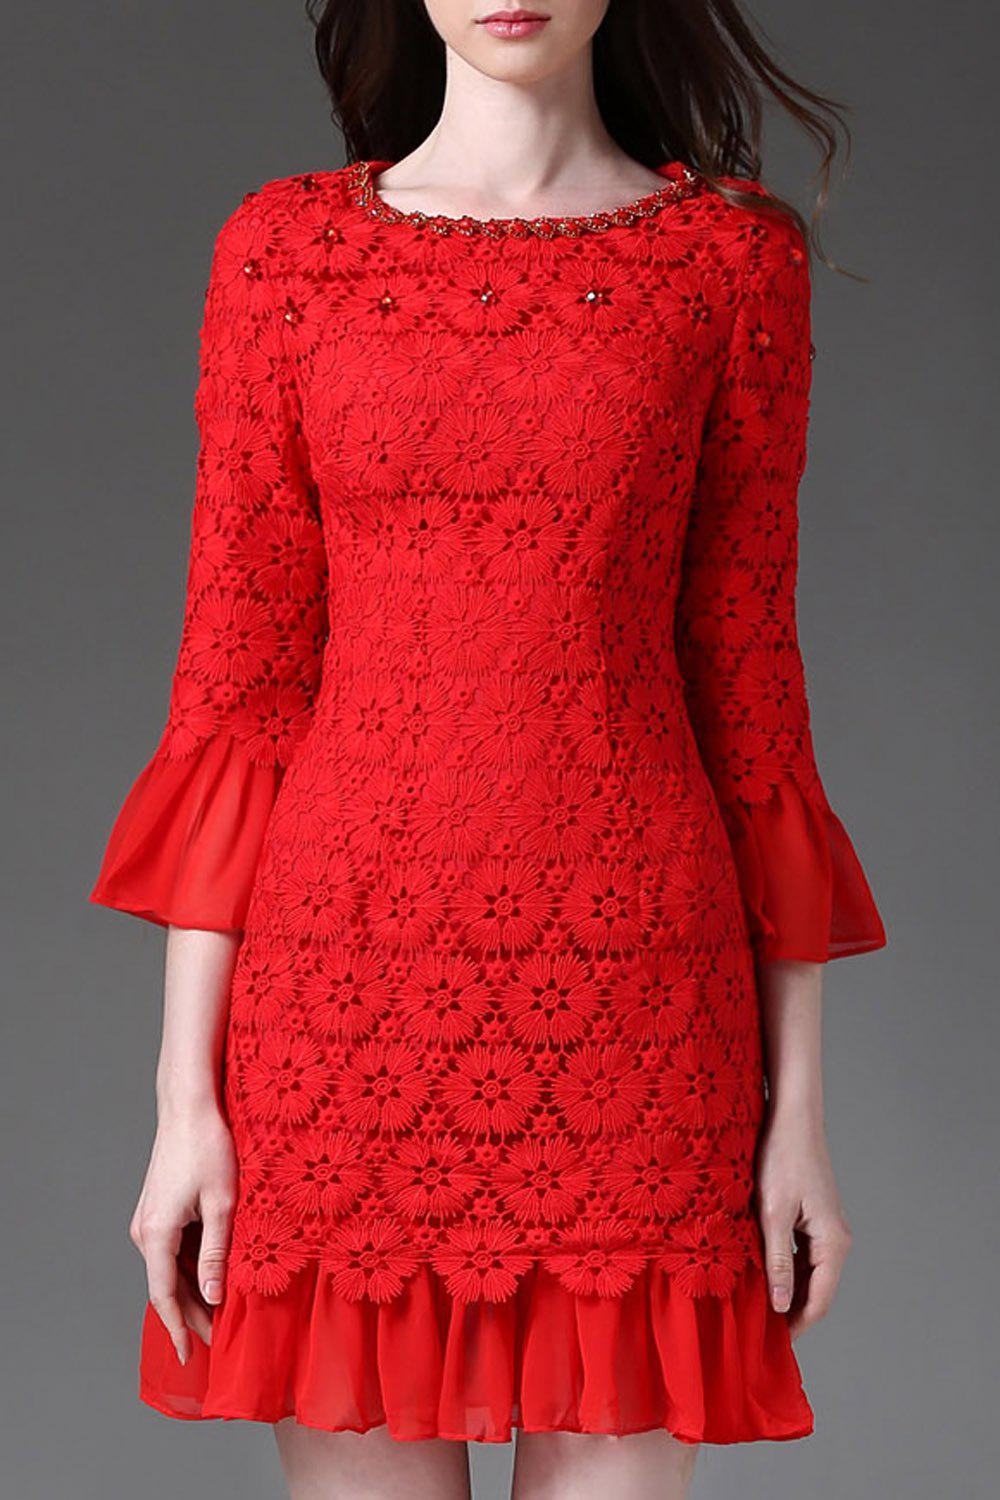 New Round Collar Beaded Pierced Lace Flare Sleeve Dress